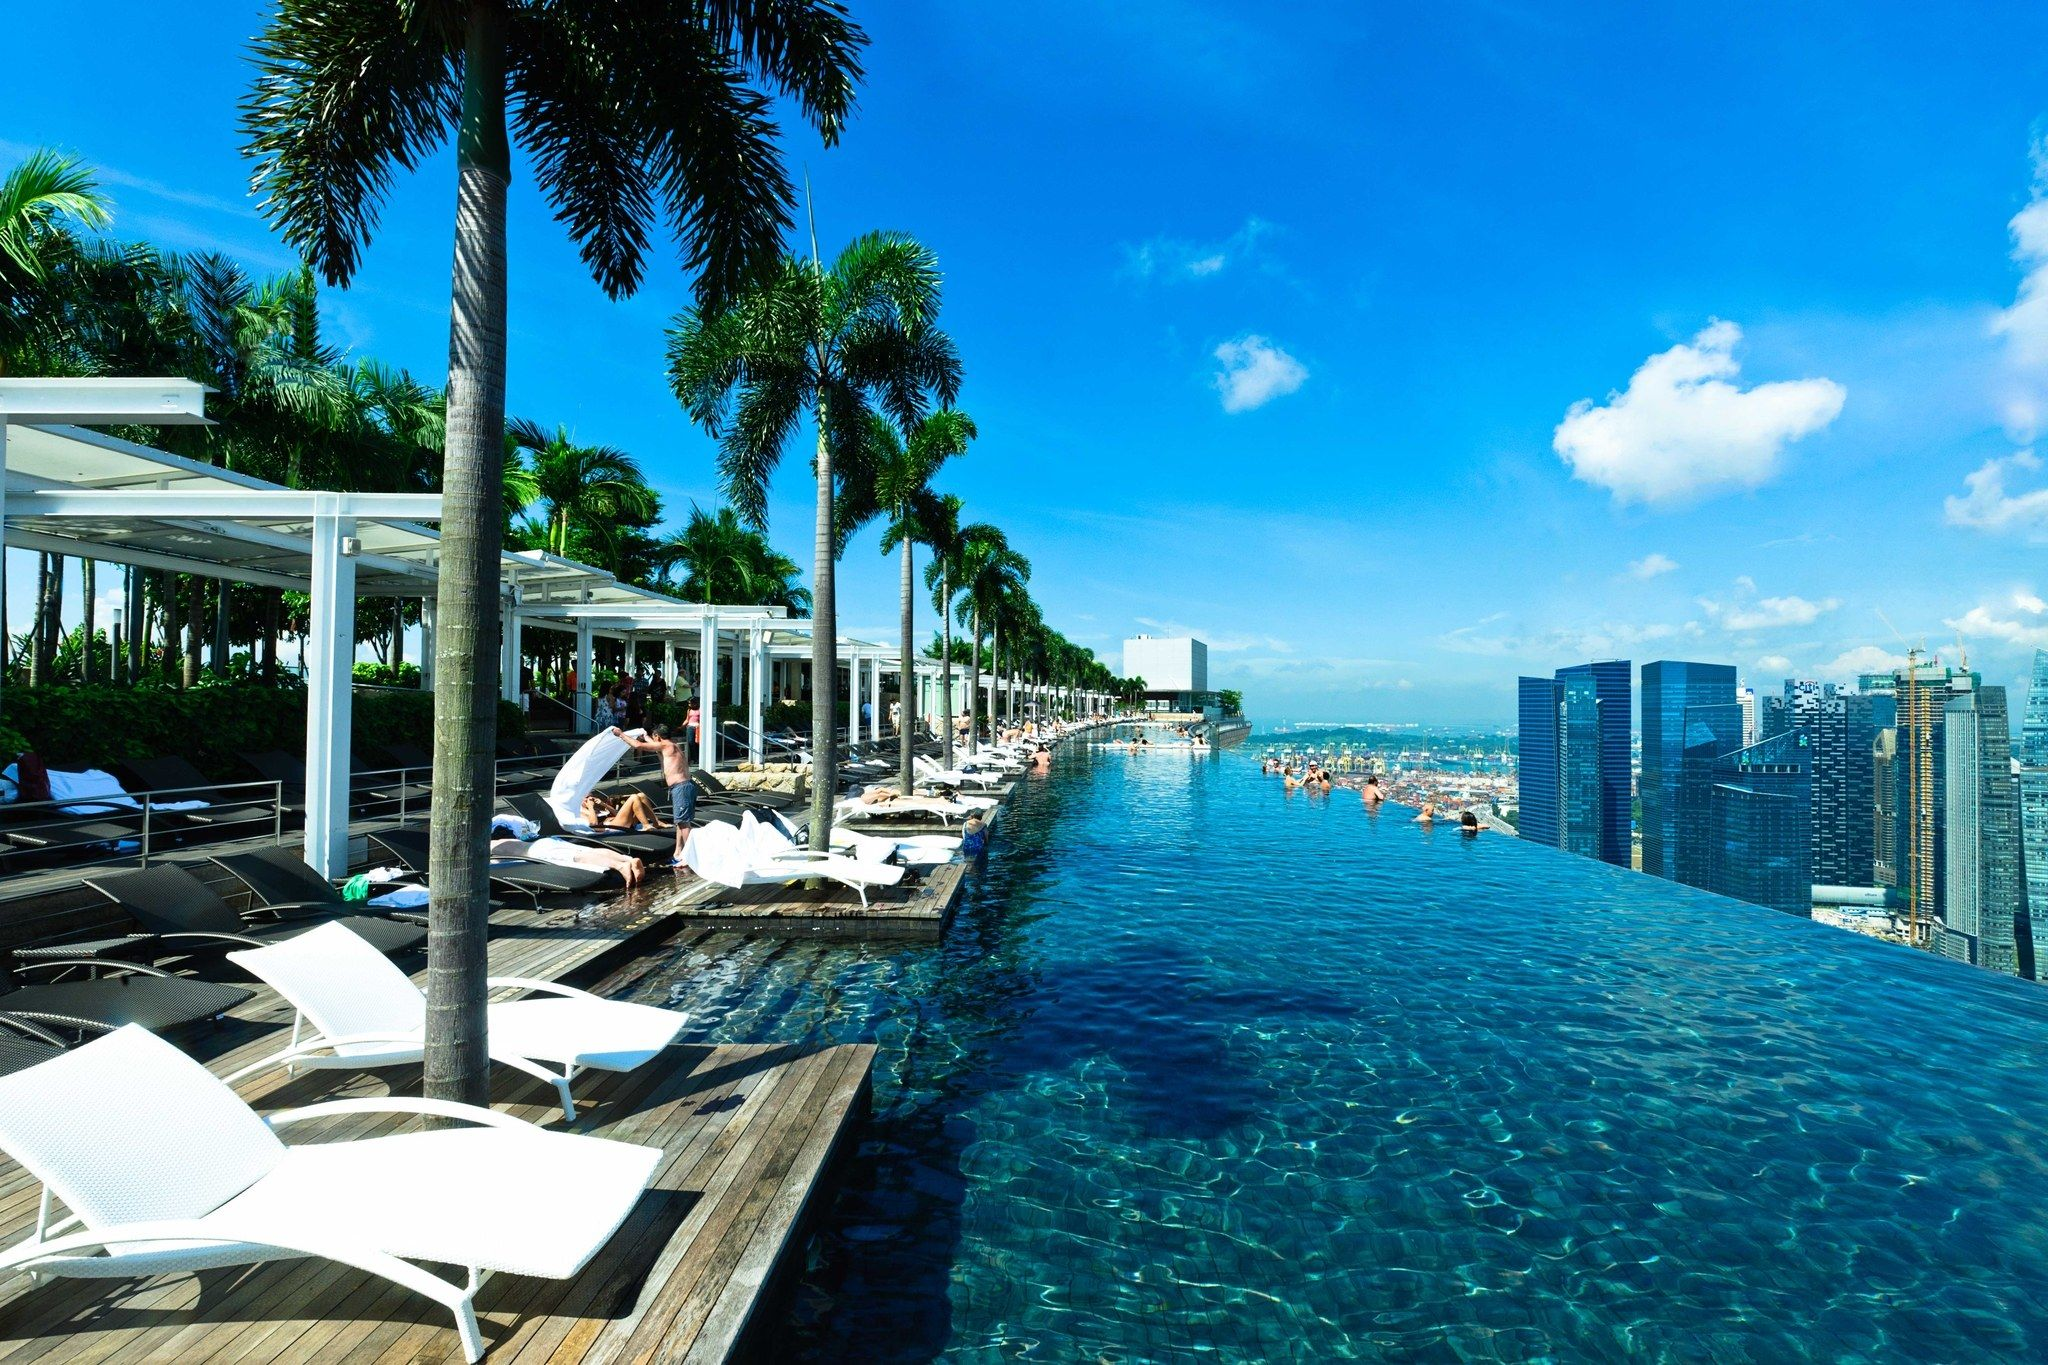 5 Of The World S Most Incredible Hotel Pool Views With Images